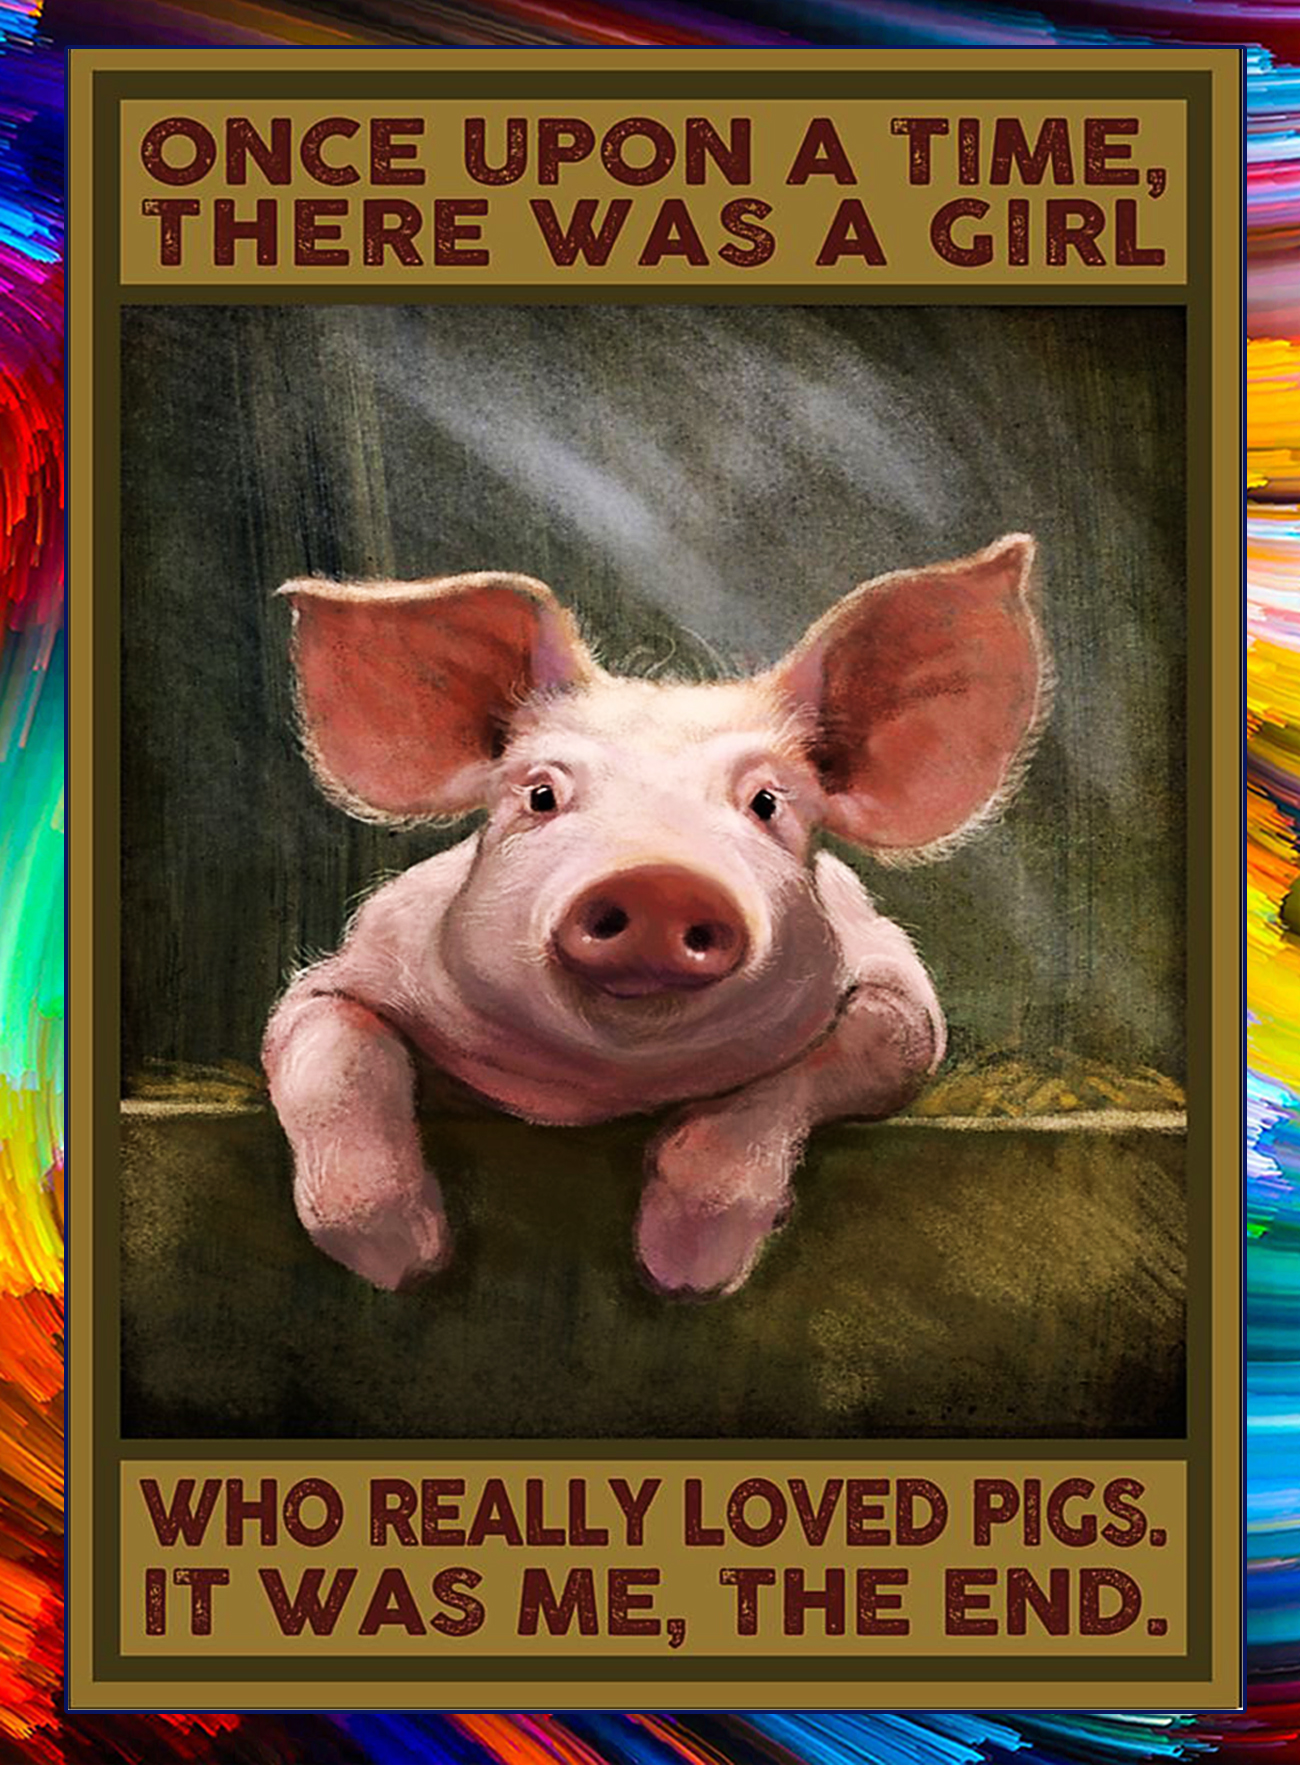 Once upon a time there was a girl who really loved pigs poster - A4